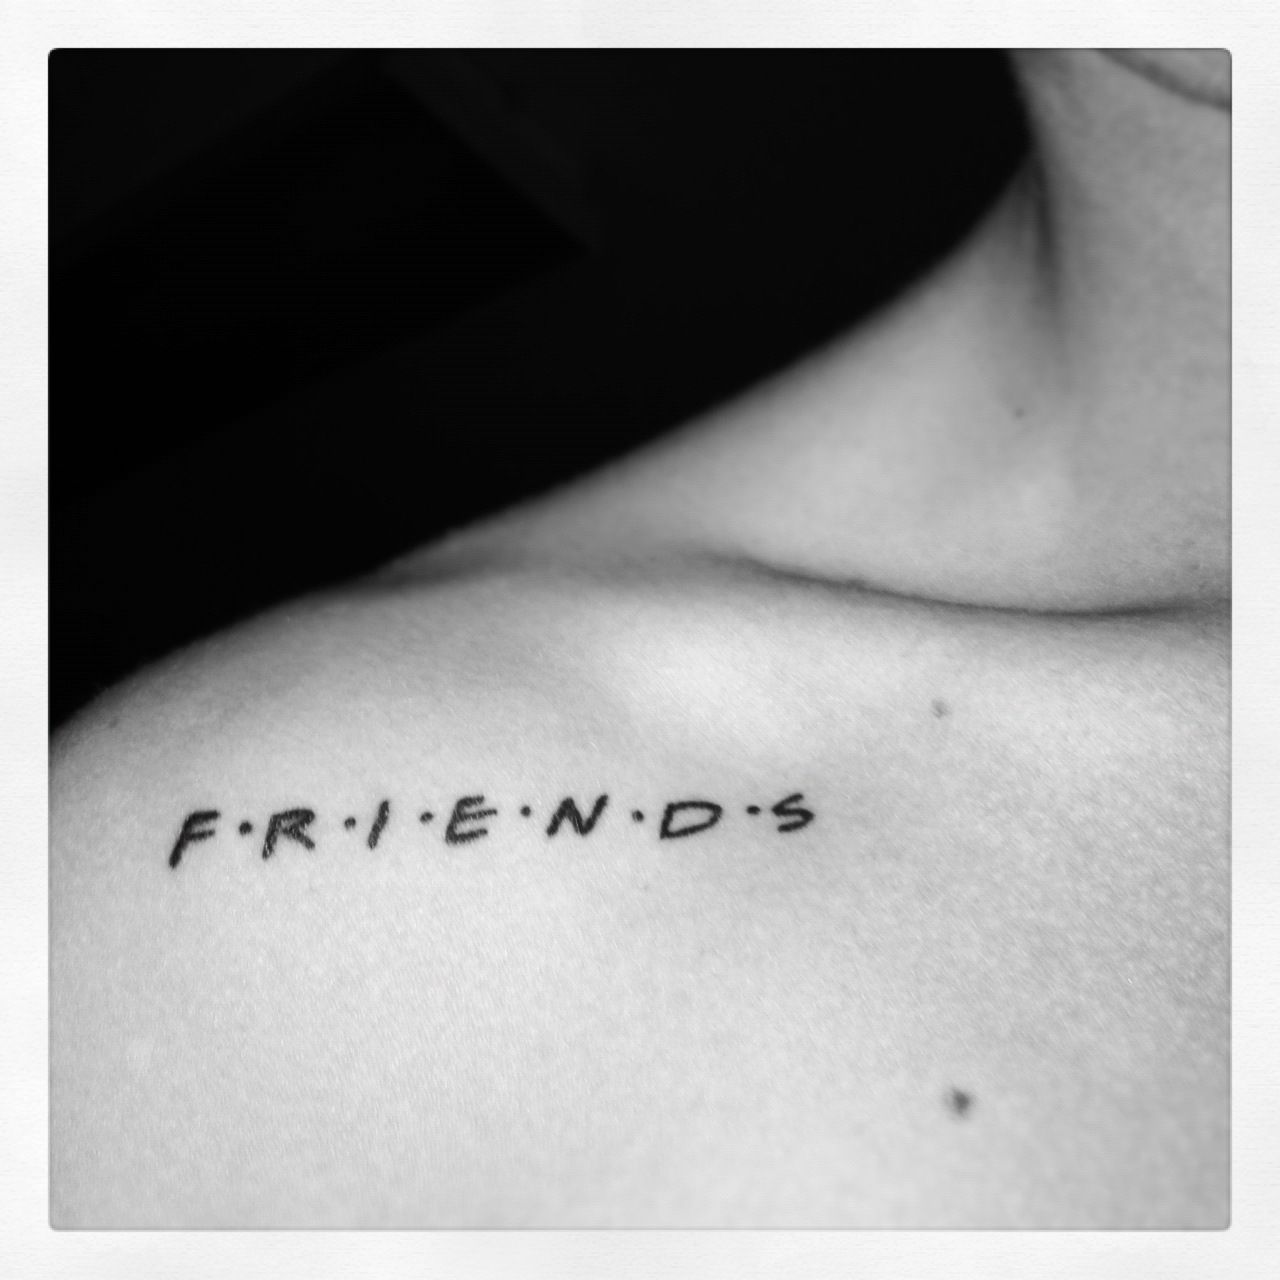 Friends Tv Show Tattoo Located On My Upper Right Chest Personal